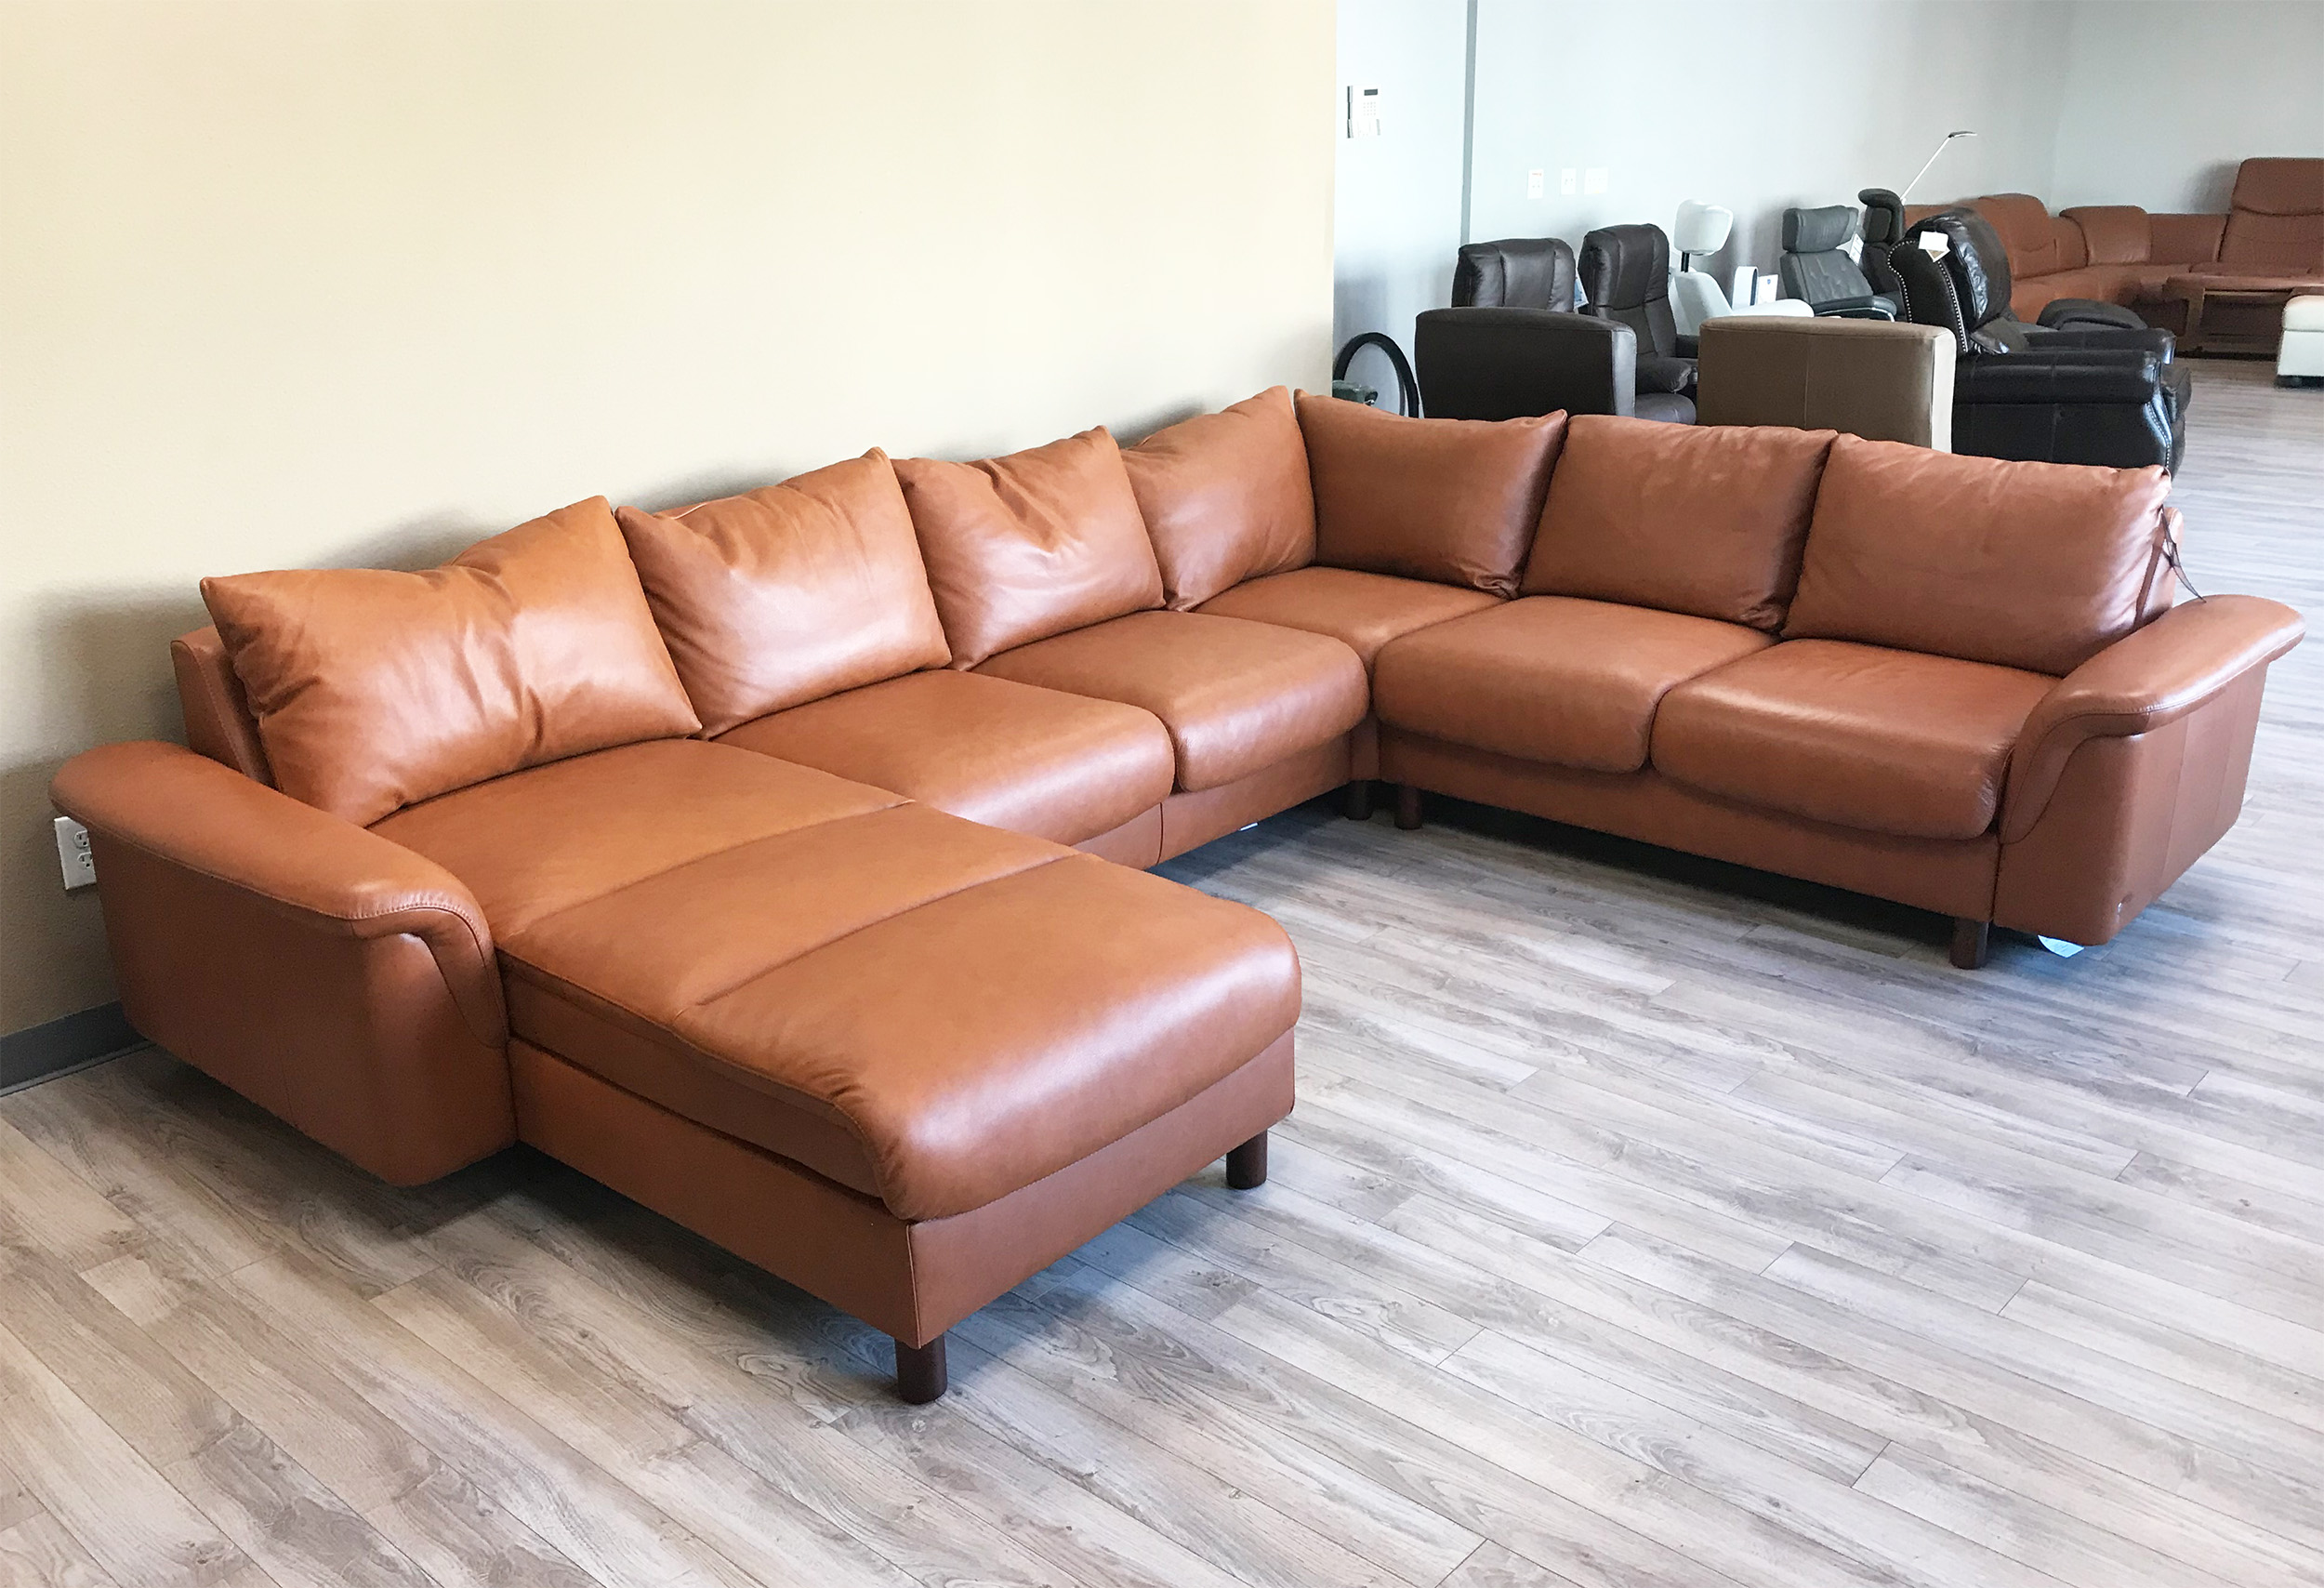 Enjoyable Stressless Sofa Loveseat Recliner Chair And Ottoman By Ekornes Pdpeps Interior Chair Design Pdpepsorg